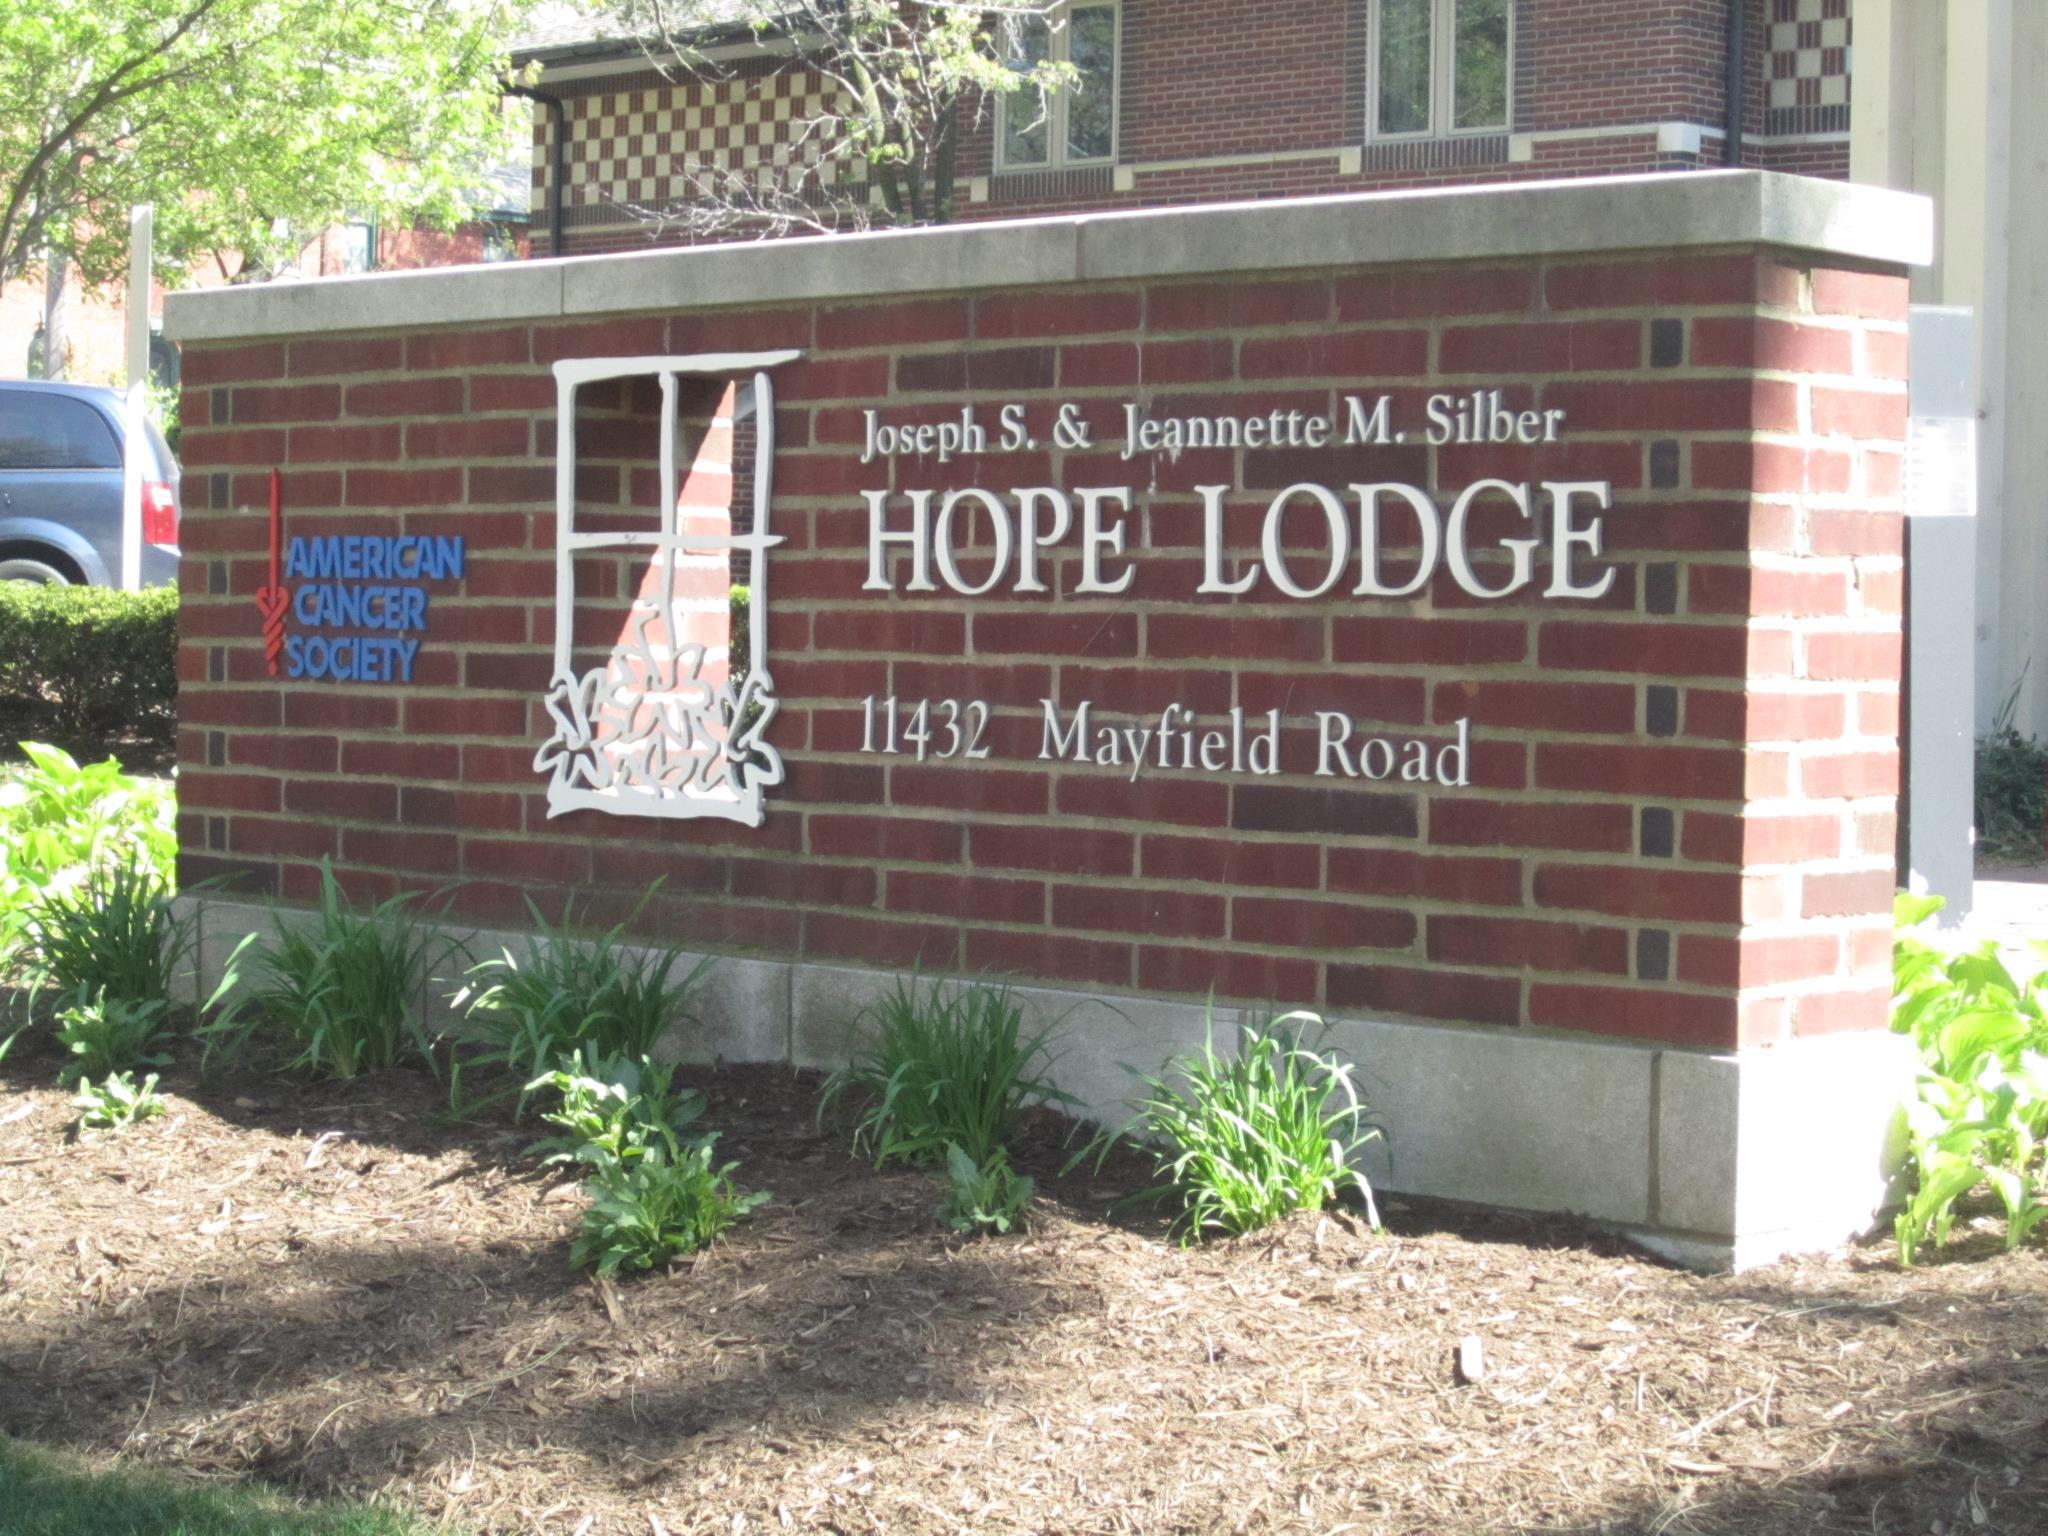 Joseph S. & Jeannette M. Silber Hope Lodge